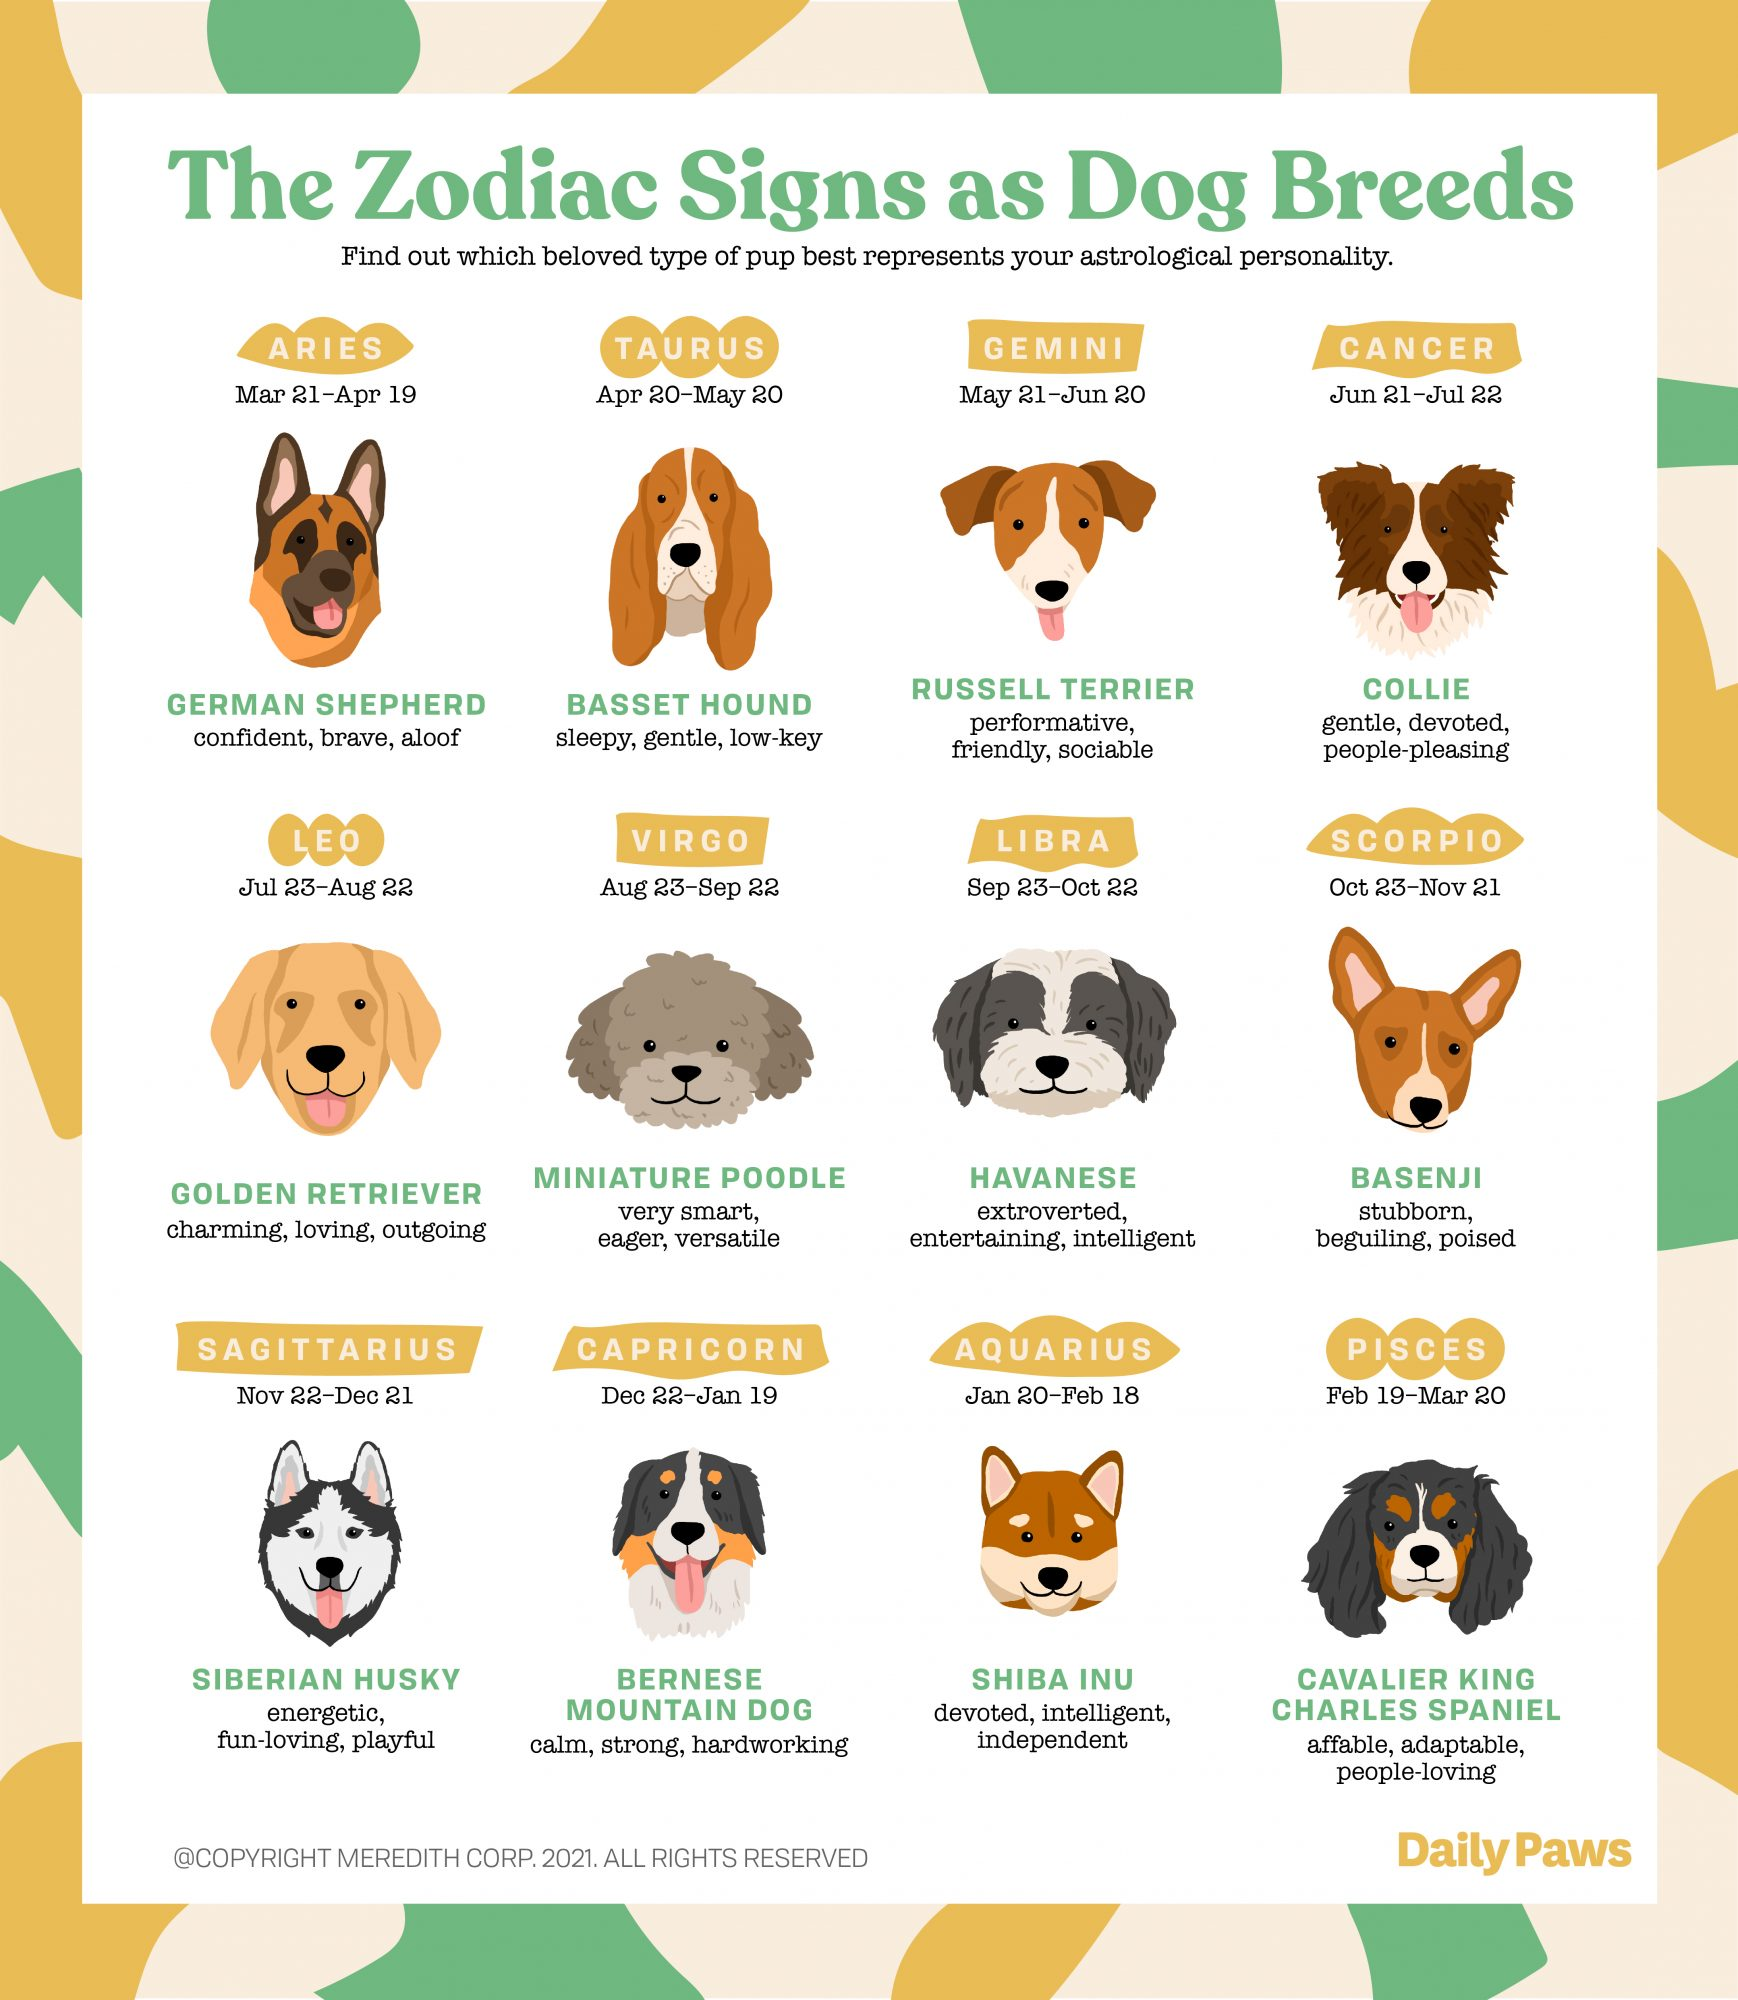 infographic showing which dog breed matches which zodiac sign